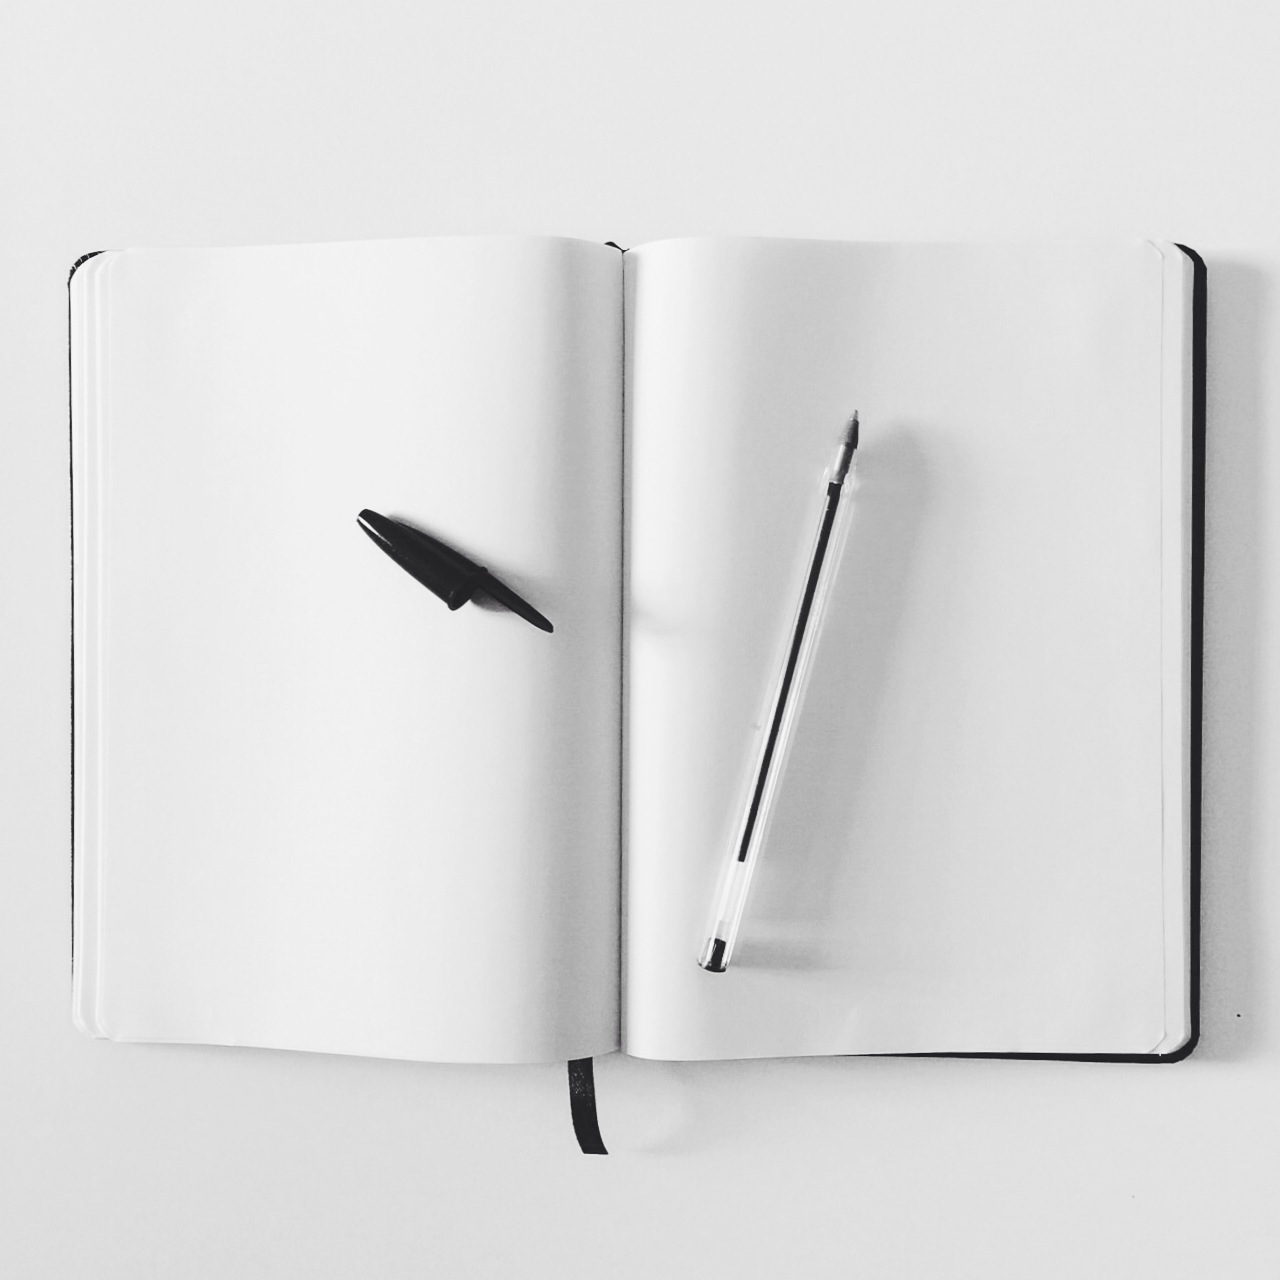 An open notebook with two blank pages. An uncapped pen rests on the paper, asking to be used.